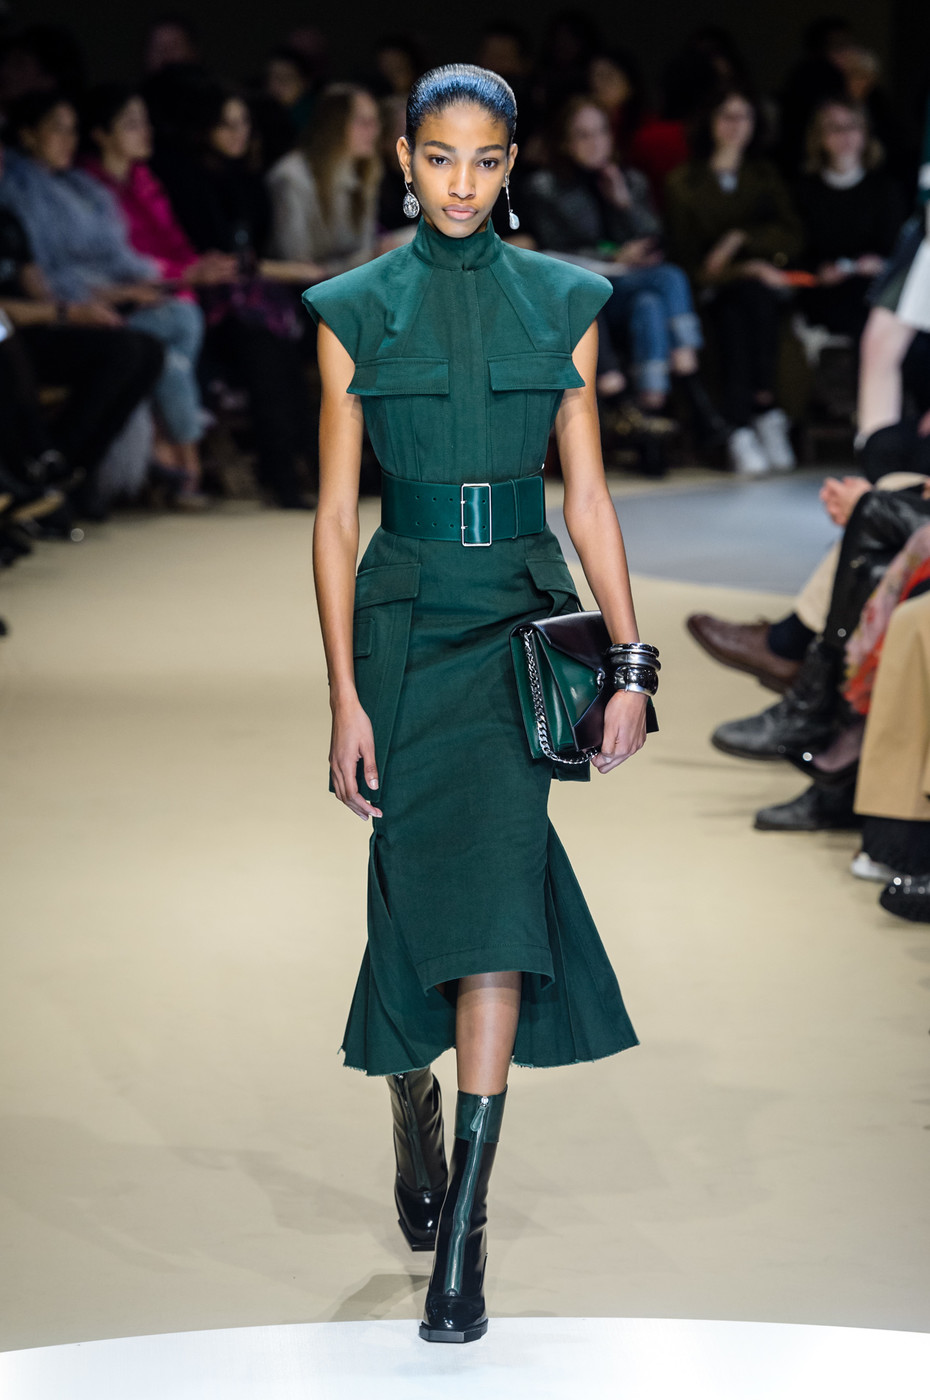 Alexander McQueen Fall 2018 Ready-to-Wear Collection - Vogue 61